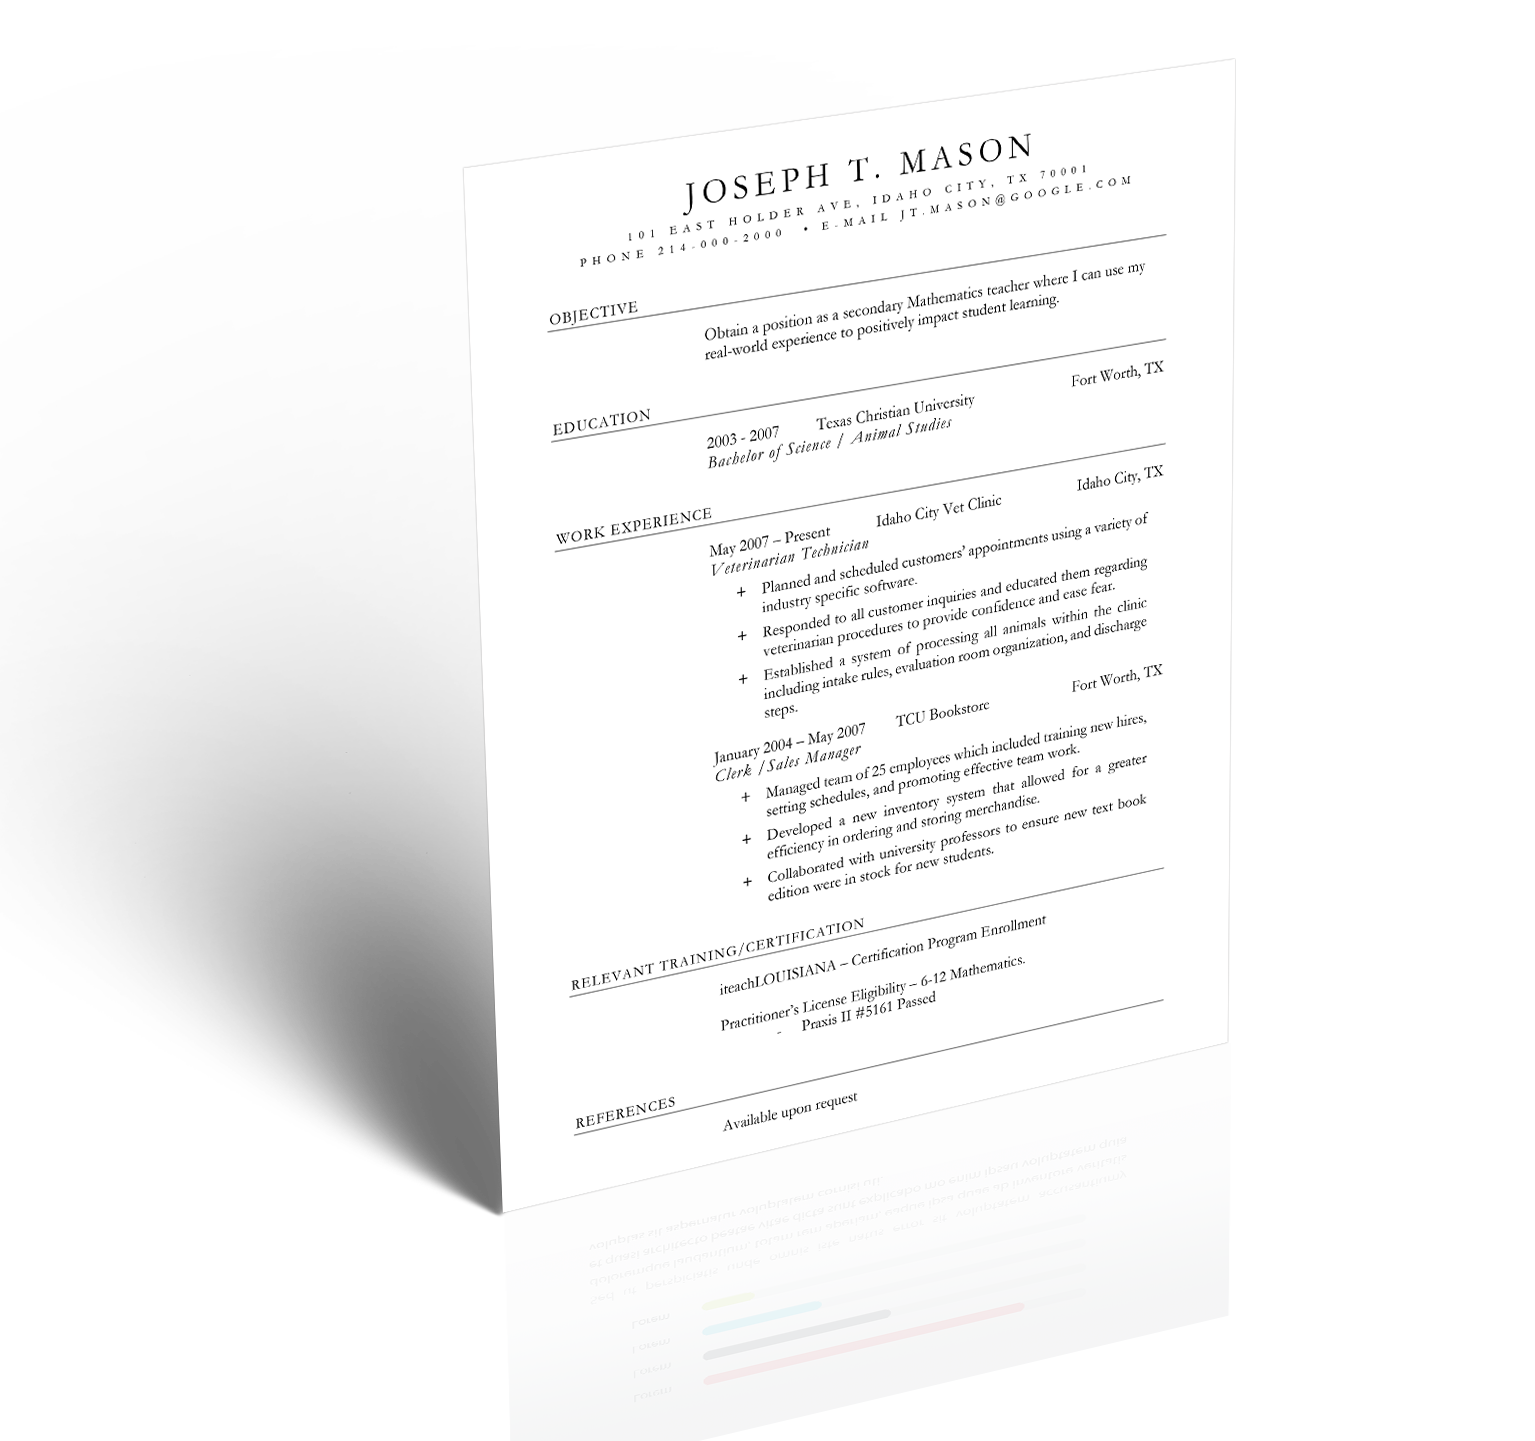 Teacher resume 5 minute guide to writing the perfect resume then keep scrolling down the page for a step by step breakdown of how to fill out each section of the teacher resume xflitez Gallery